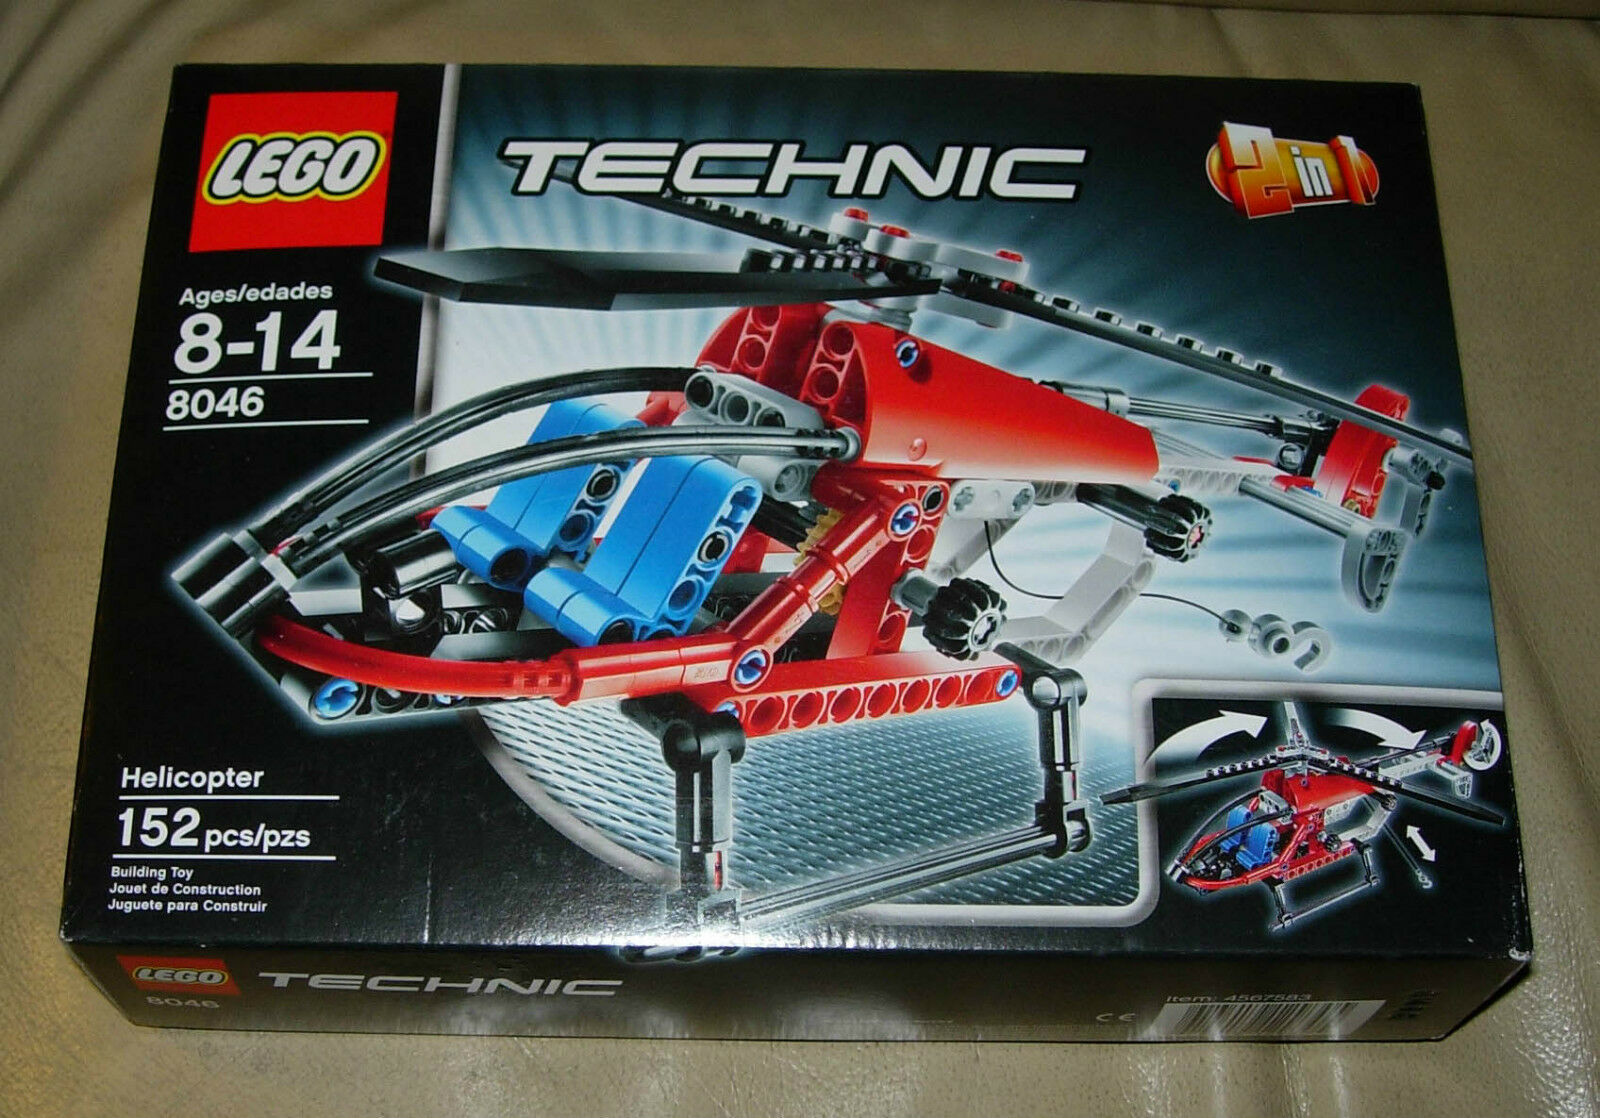 LEGO TECHNIC 8046  HELICOPTER  SEAPLANE   2 IN 1  2010  MIB  SEALED  pas cher en ligne